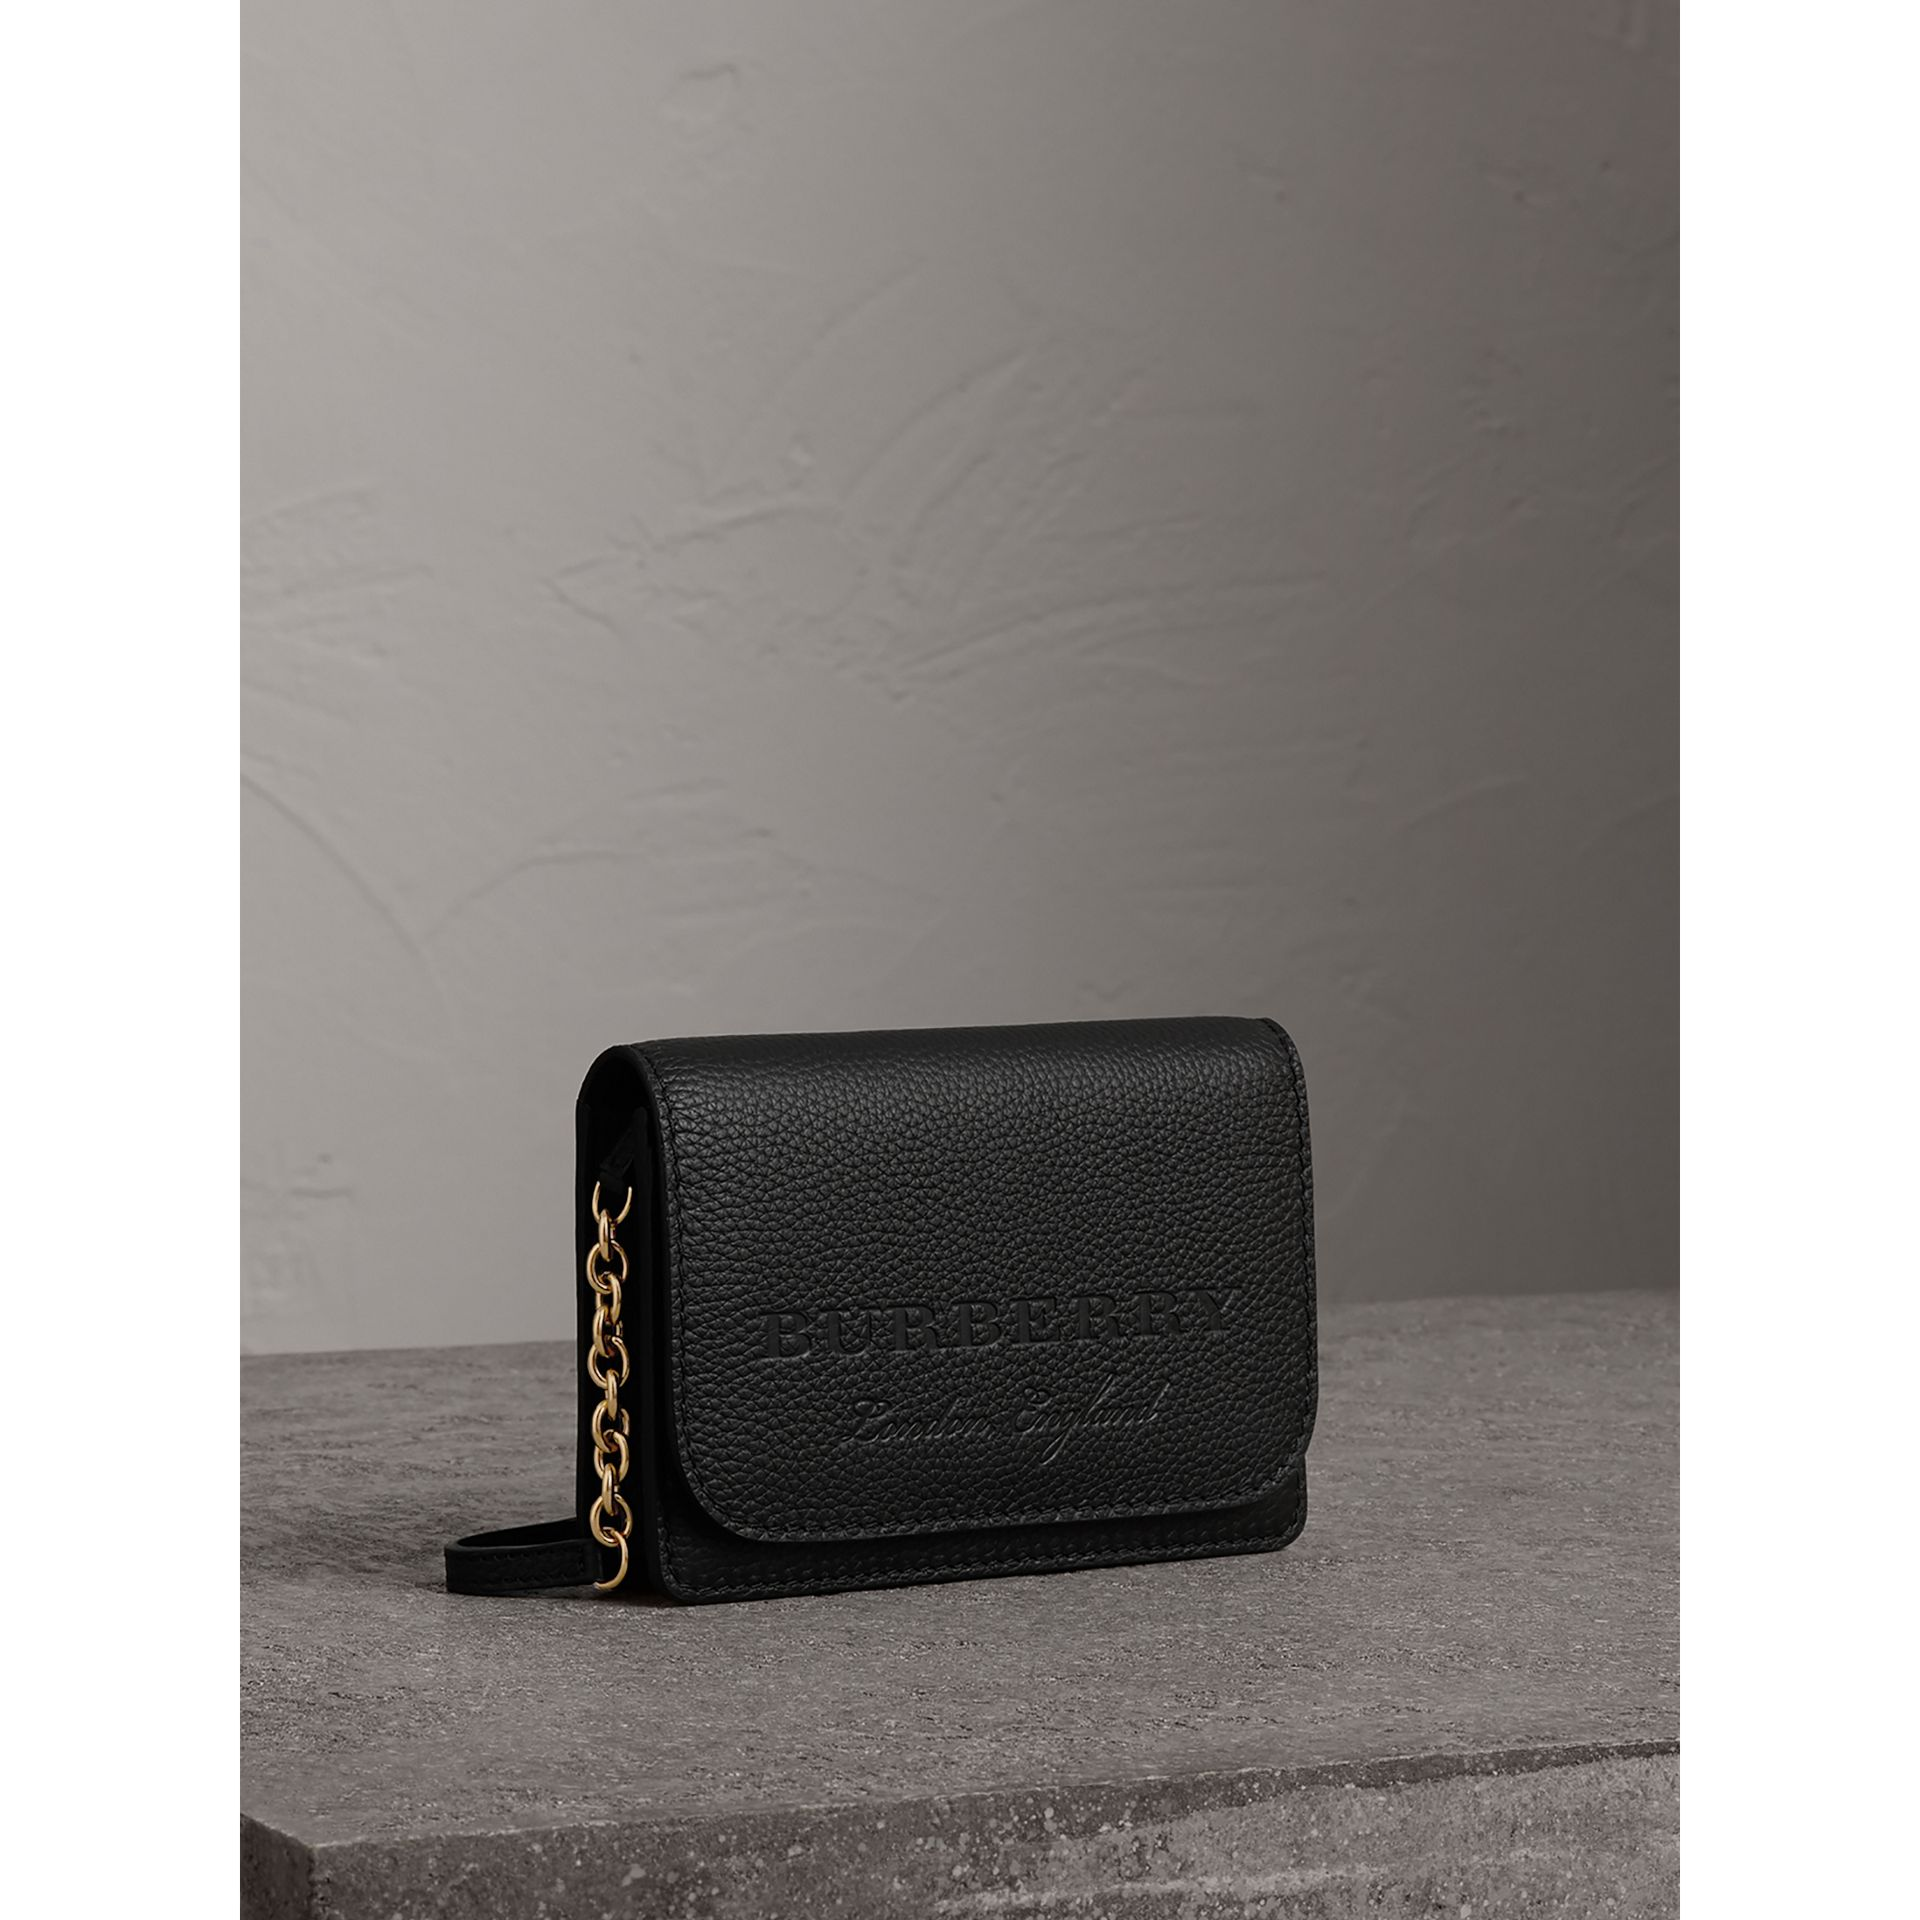 Embossed Leather Wallet with Detachable Strap in Black - Women | Burberry United States - gallery image 6